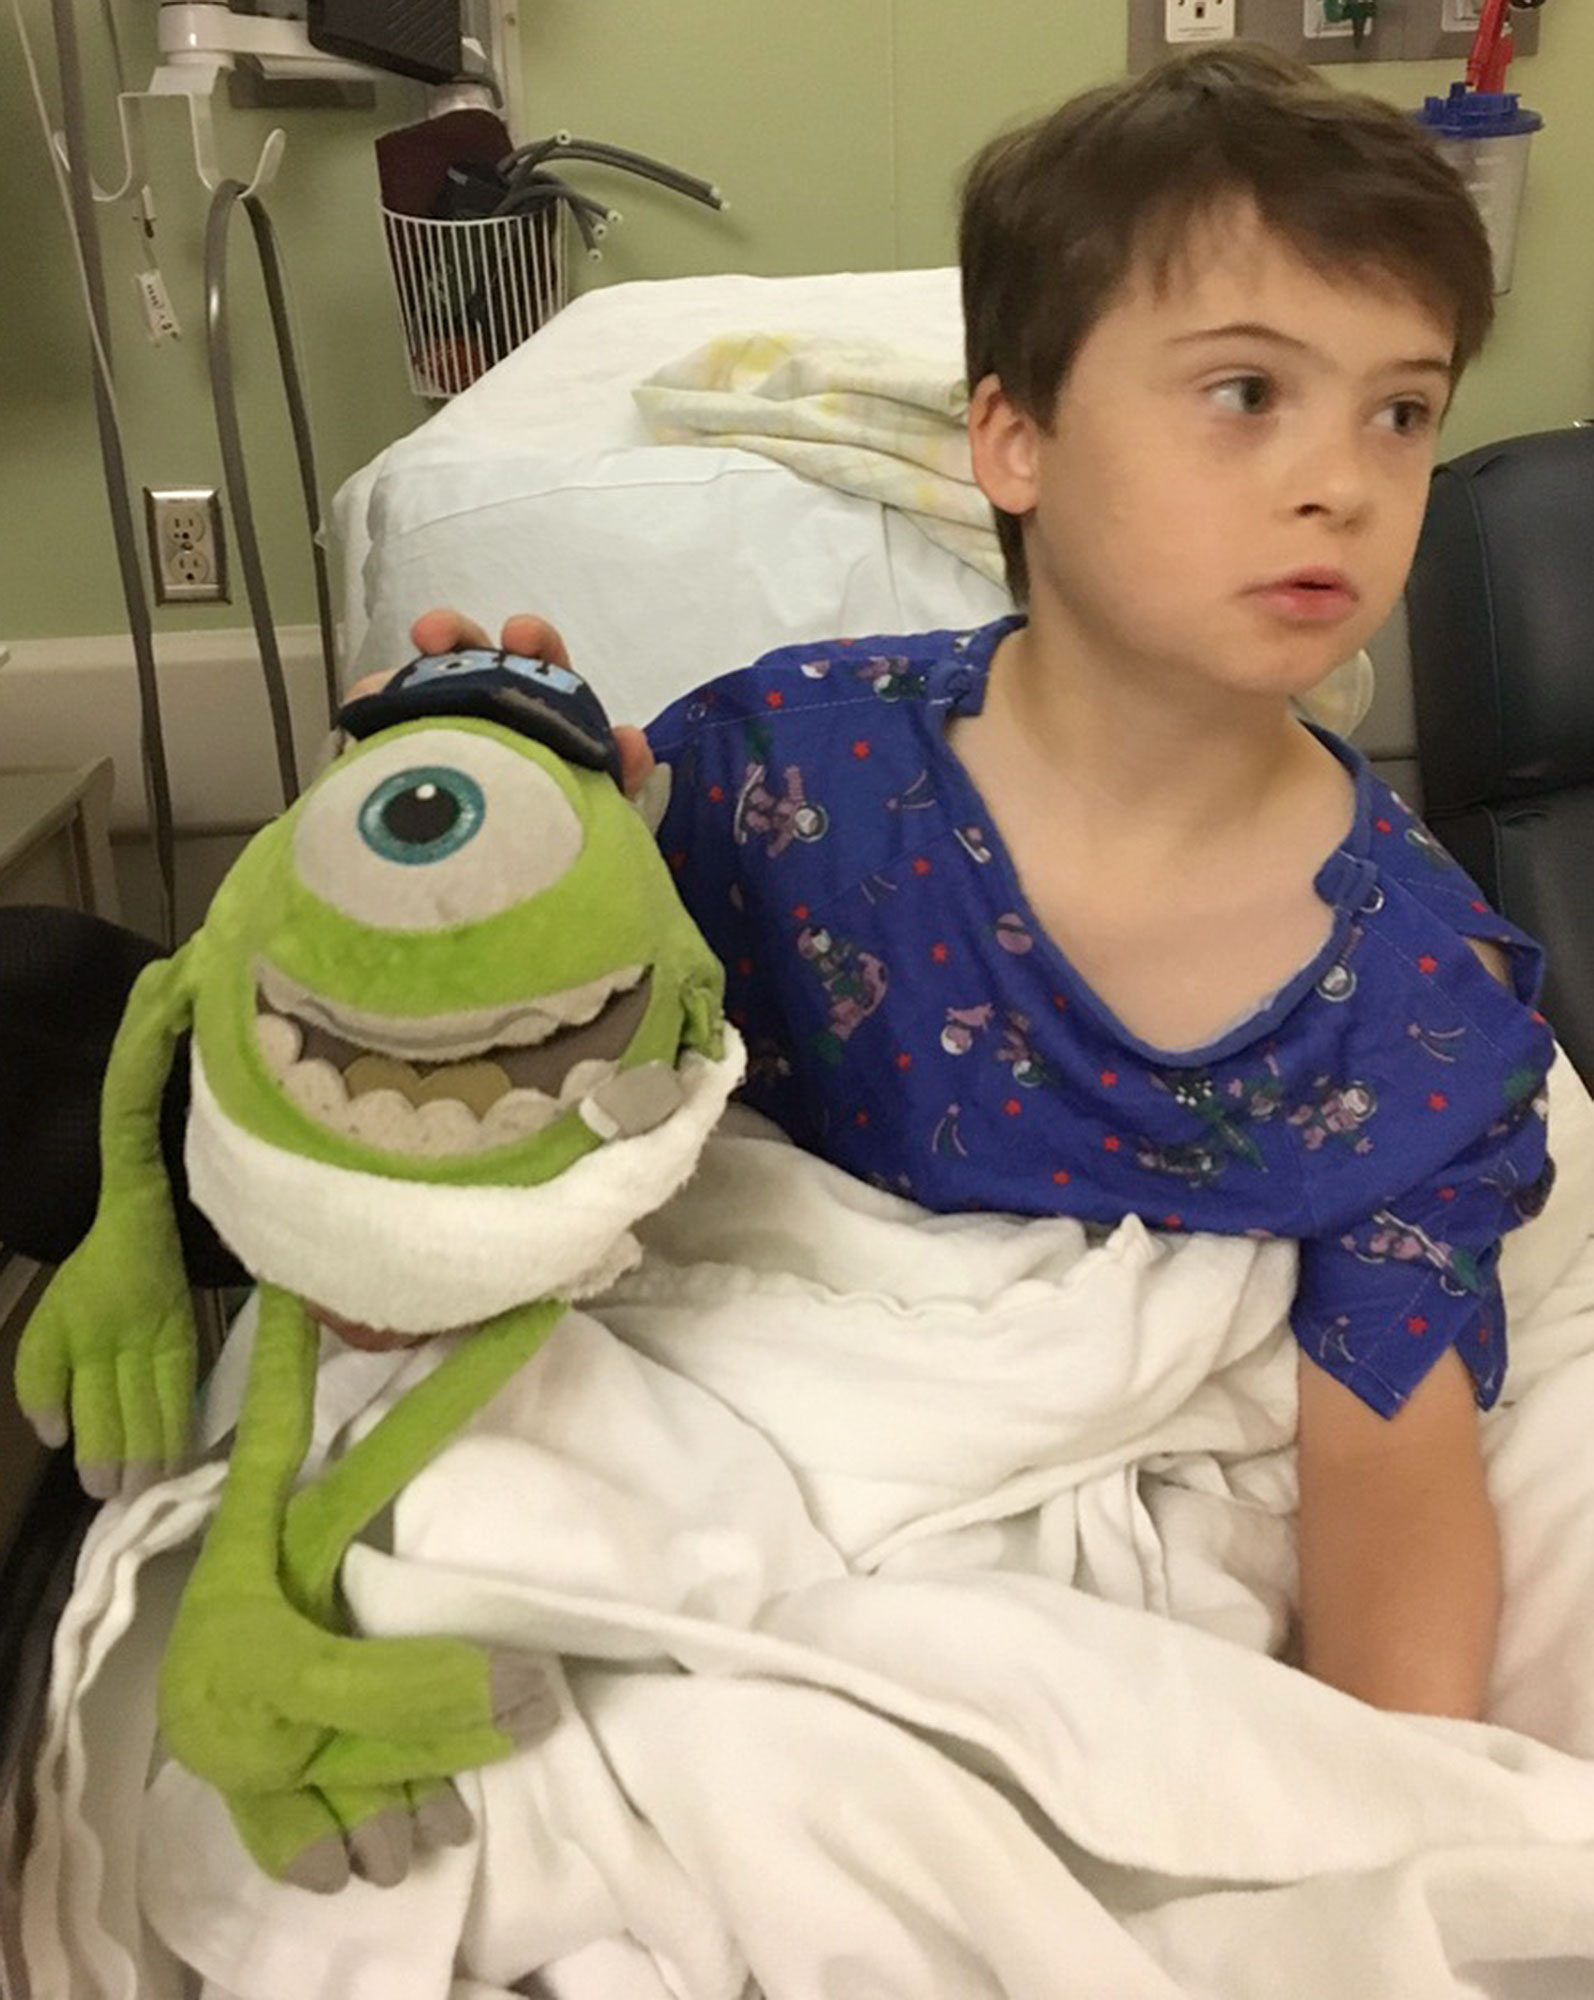 "credit: Children's Hospital of Wisconsin. After Dr. Travis Groth, urologist at Children's Hospital of Wisconsin, completed surgery on 9-year-old Ryan, he noticed that Ryan's stuffed Mike Wozowski doll was a little worse for wear. Ryan has Down syndrome and several other health issues. In his nine years, Ryan has had to undergo eight surgeries – and he's taken his Mike Wozowski doll with him every time. Knowing how important he was to him, Dr. Groth re-assembled his surgical team, prepped the monster, proceeded with a ""time out"" and then sutured the arm. Both Ryan and Mike are recovering well at home."